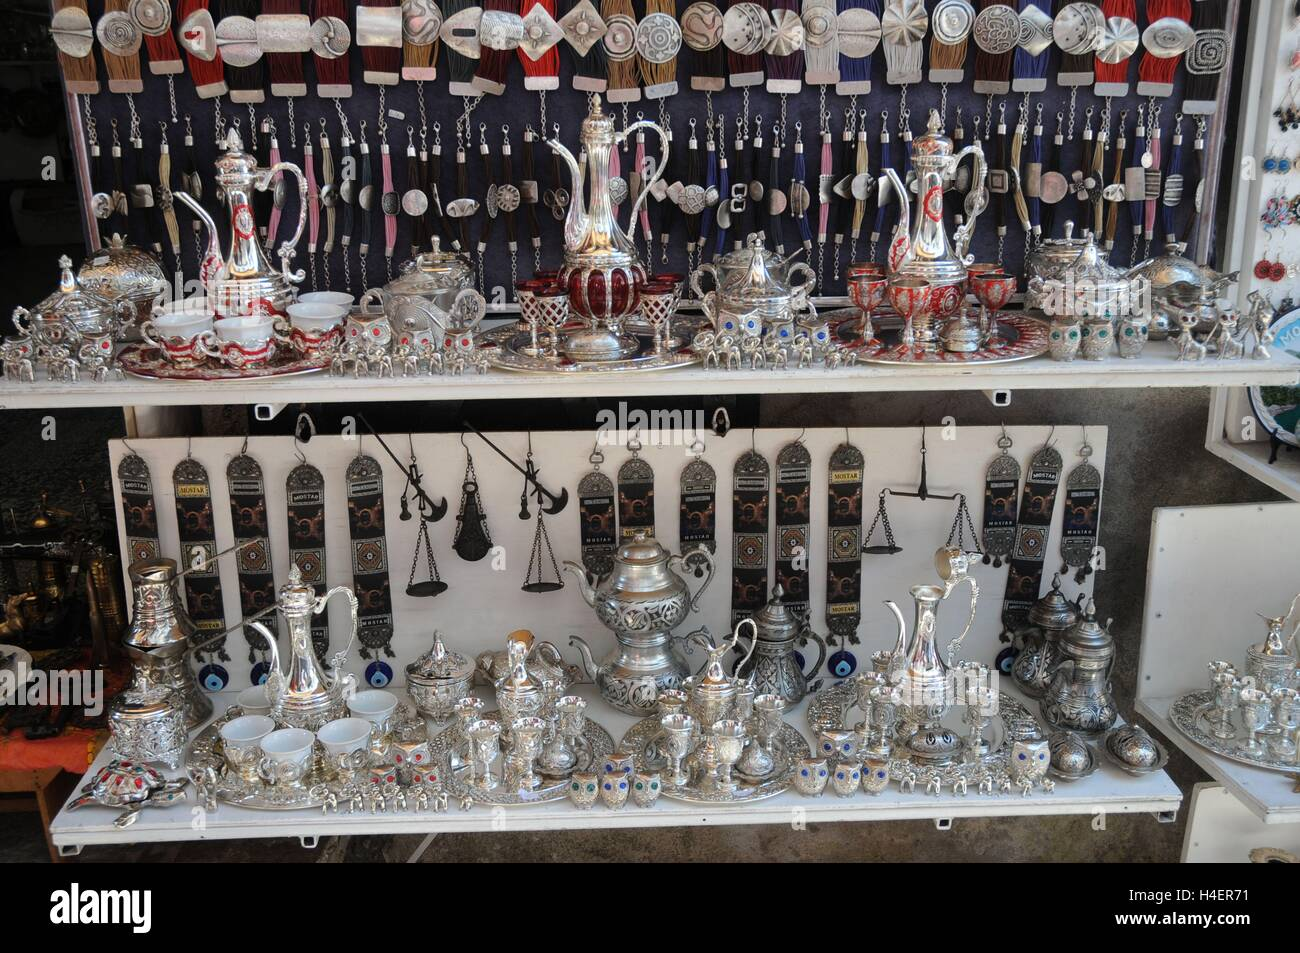 Silver gifts on sale in Mostar Bosnia Herzegovina - Stock Image